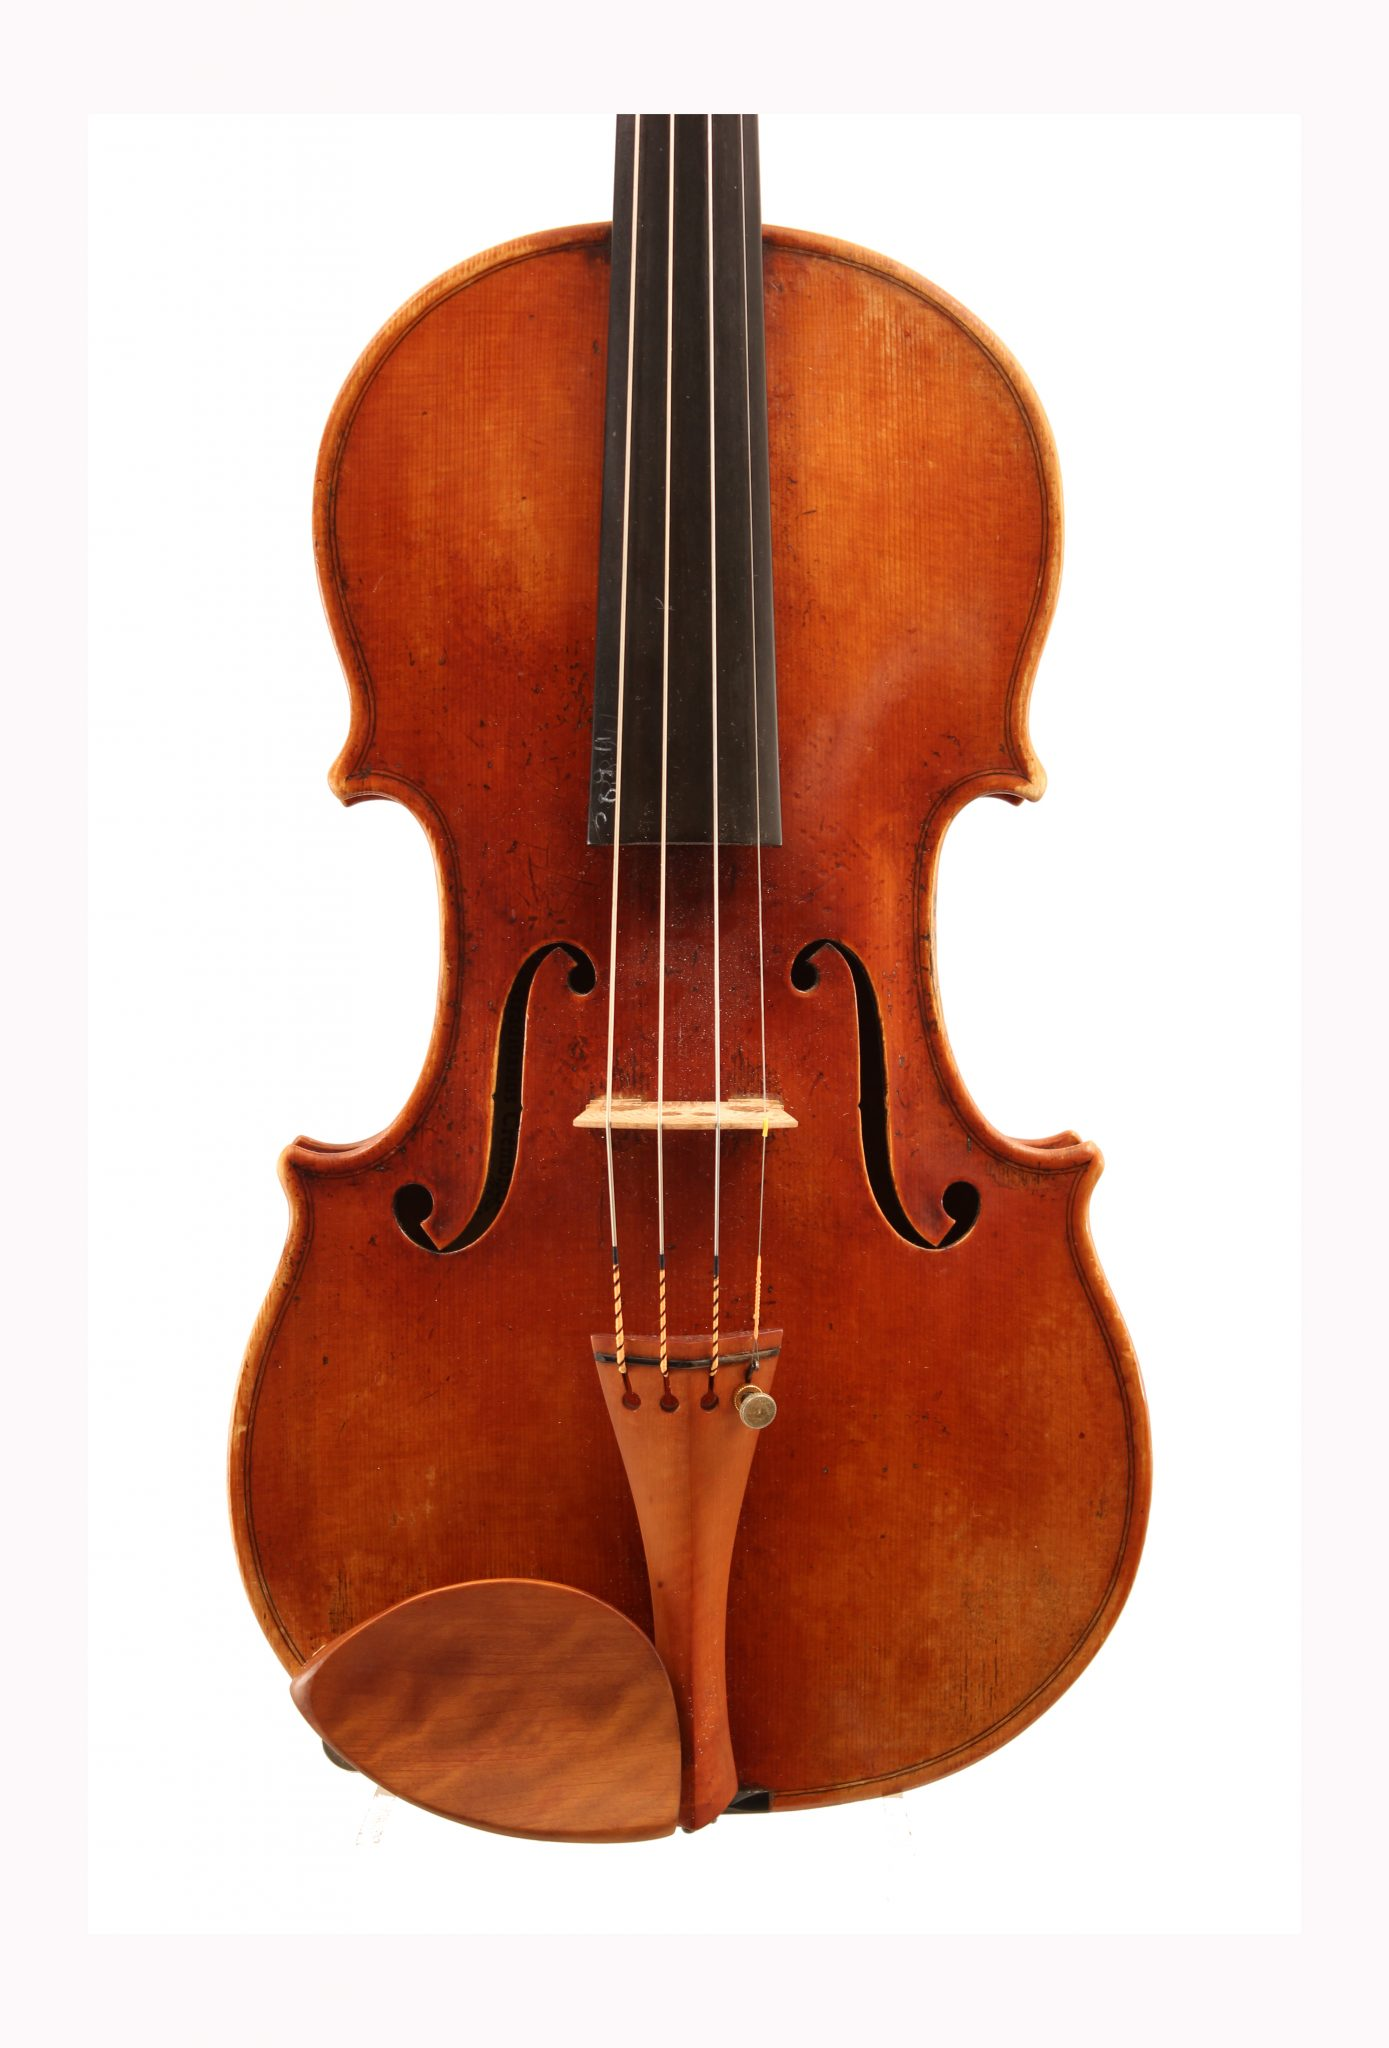 Violin by Nicholas Gooch for sale at Bridgewood and Neitzert London